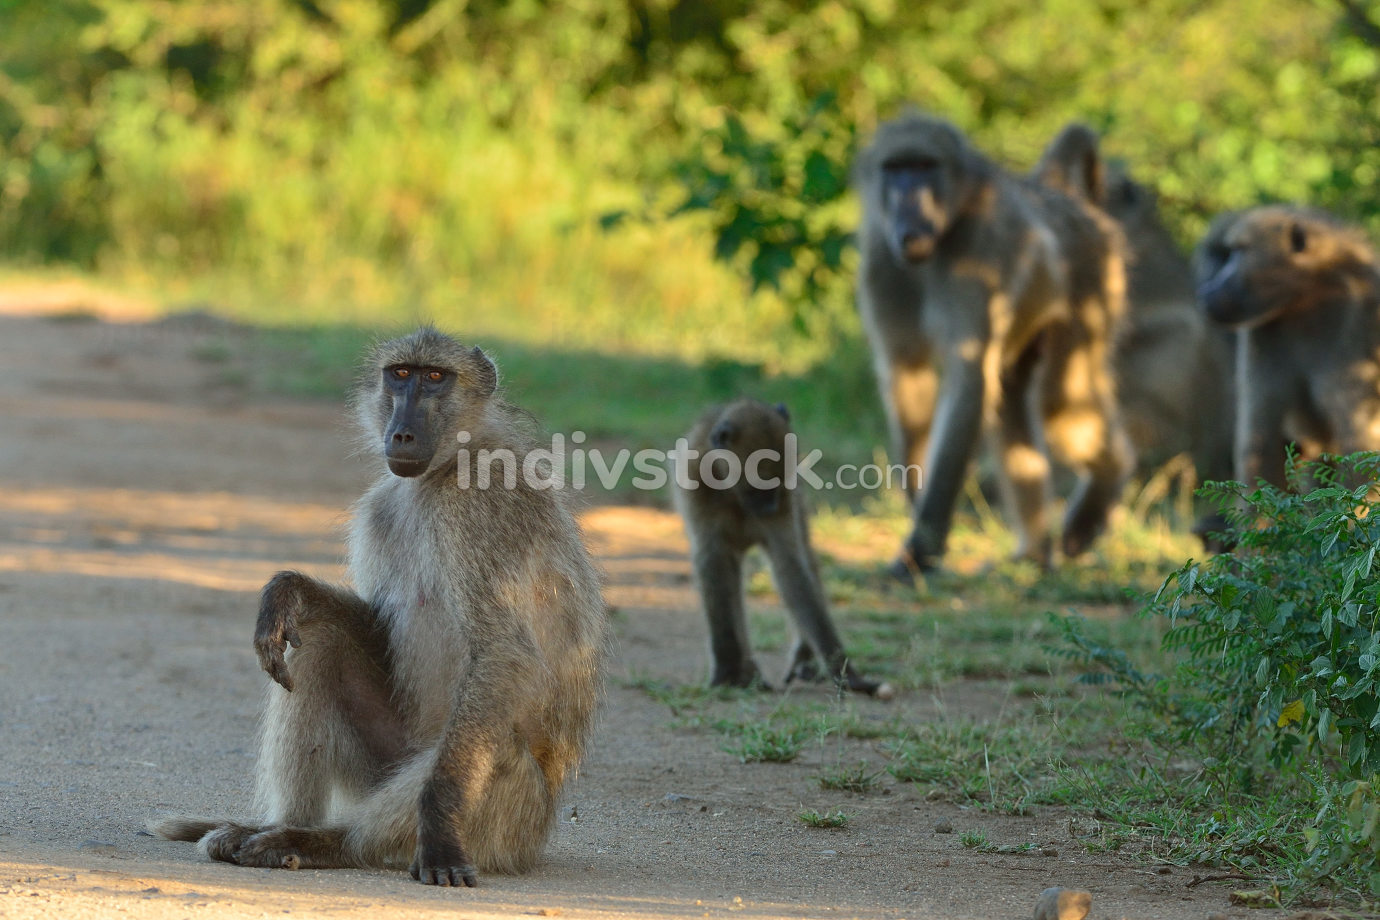 Baboon in the wilderness